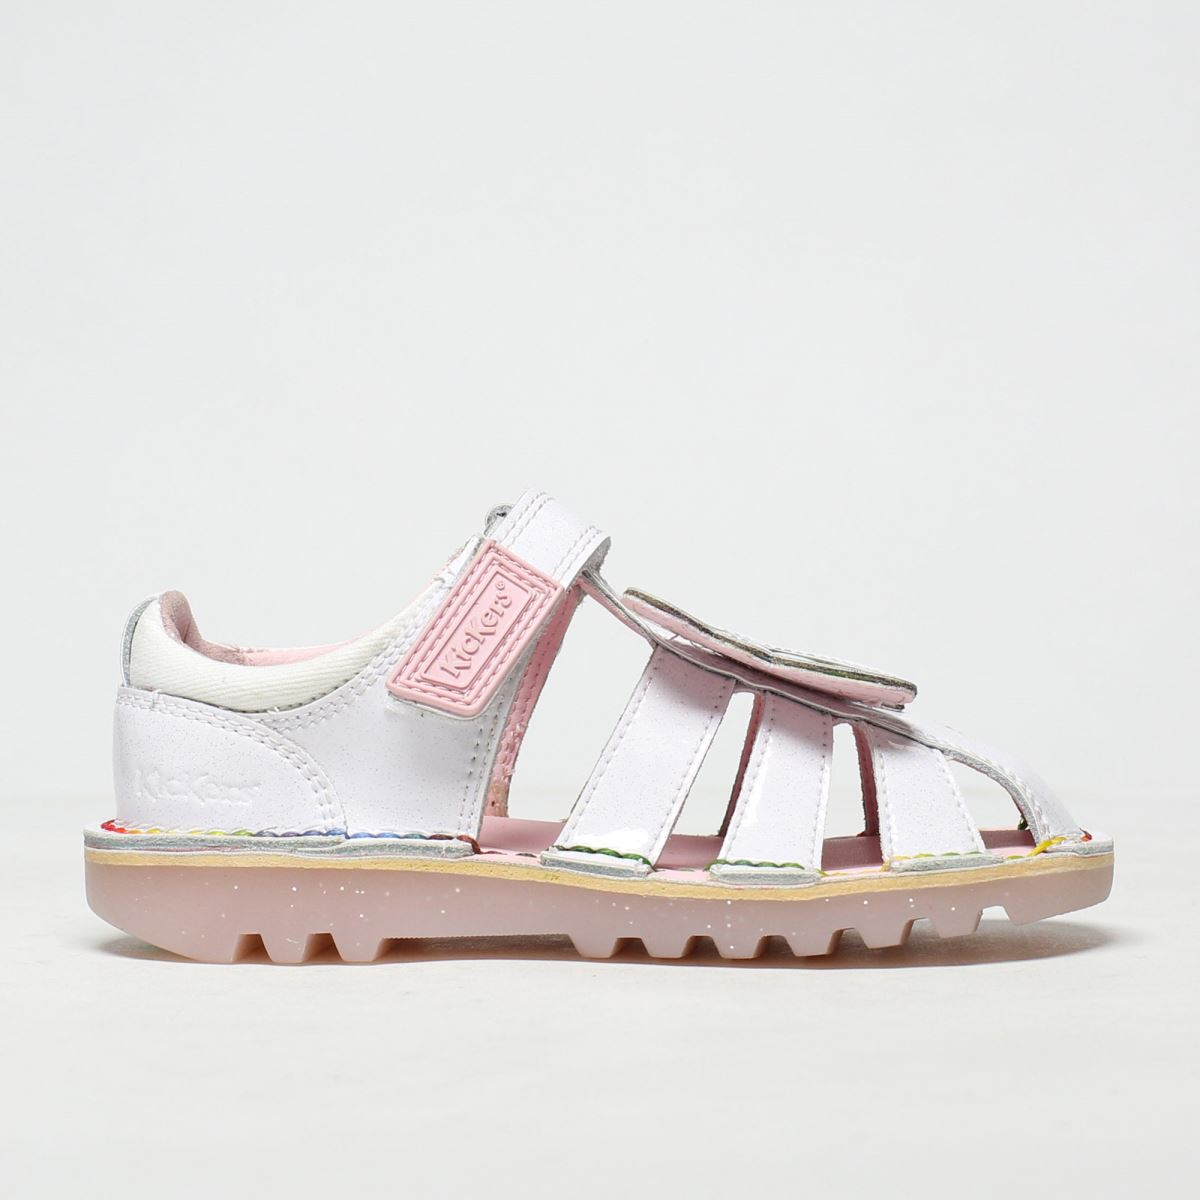 Kickers Kickers White Faeries Sandal Trainers Toddler